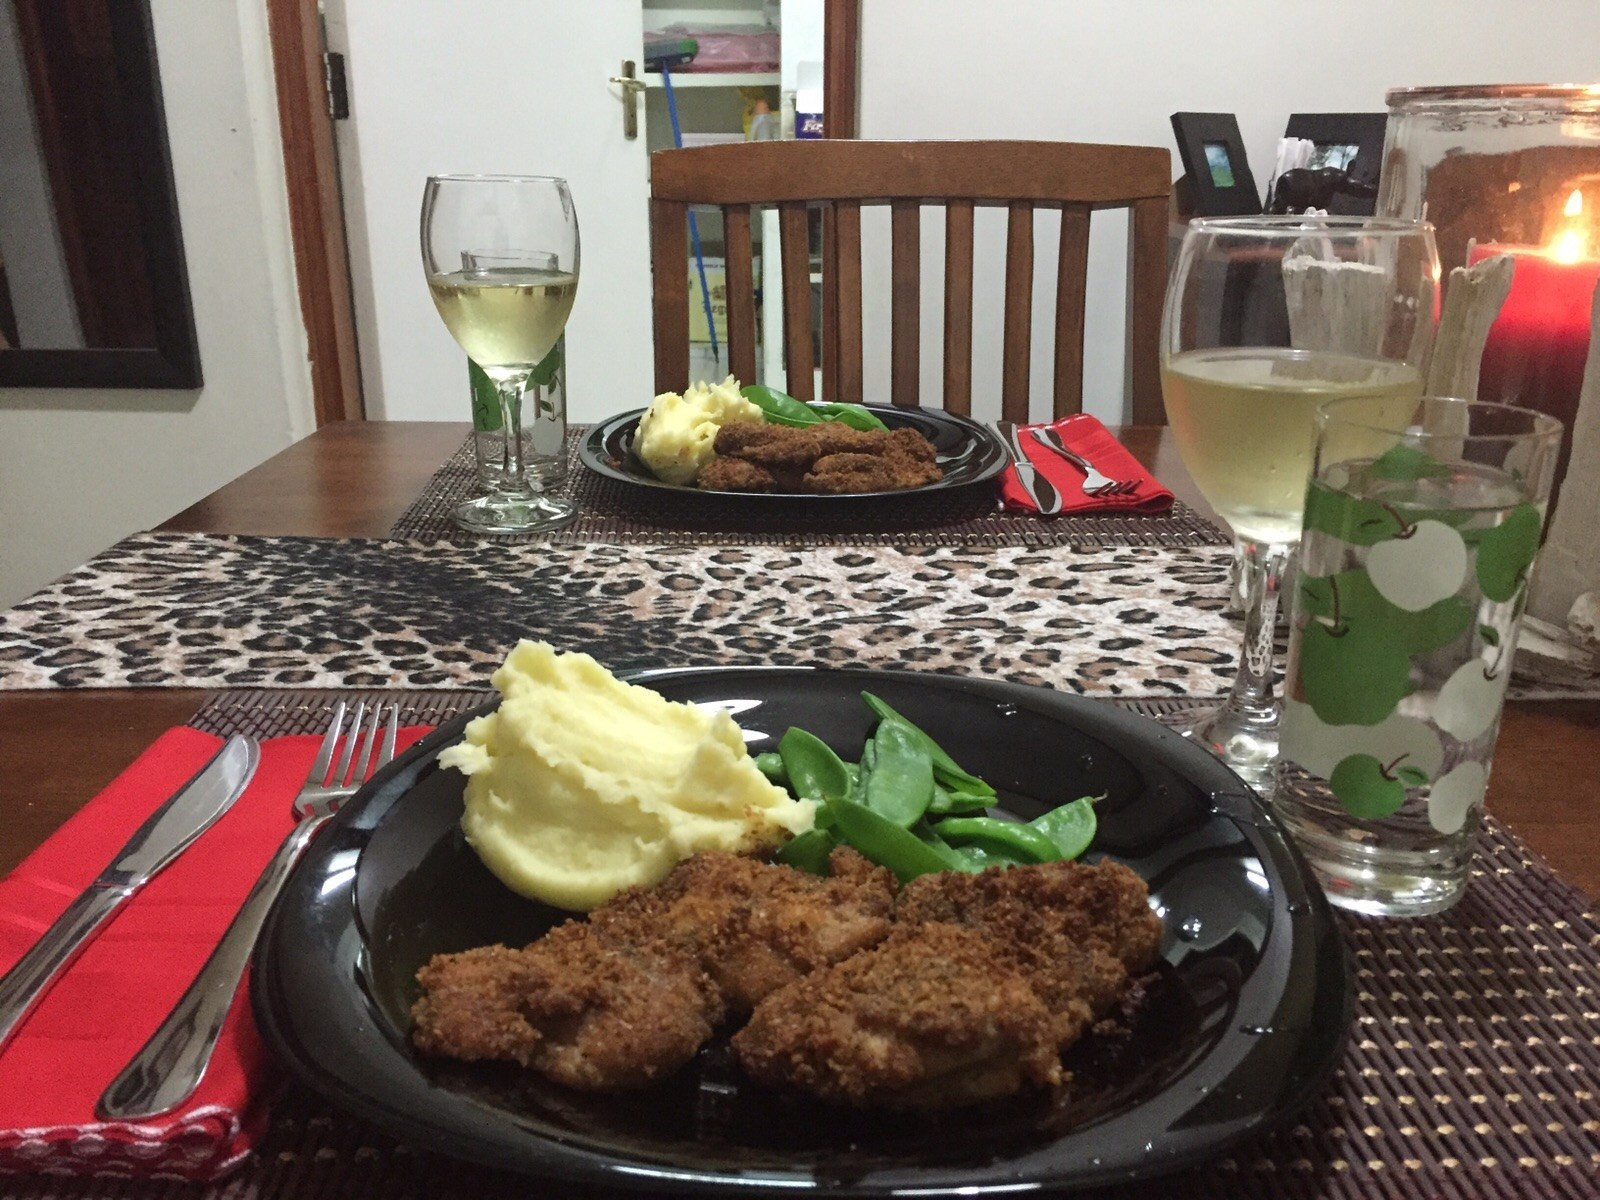 Healthy Baked Breaded Chicken  Healthy baked breaded chicken thighs They call me Daktari